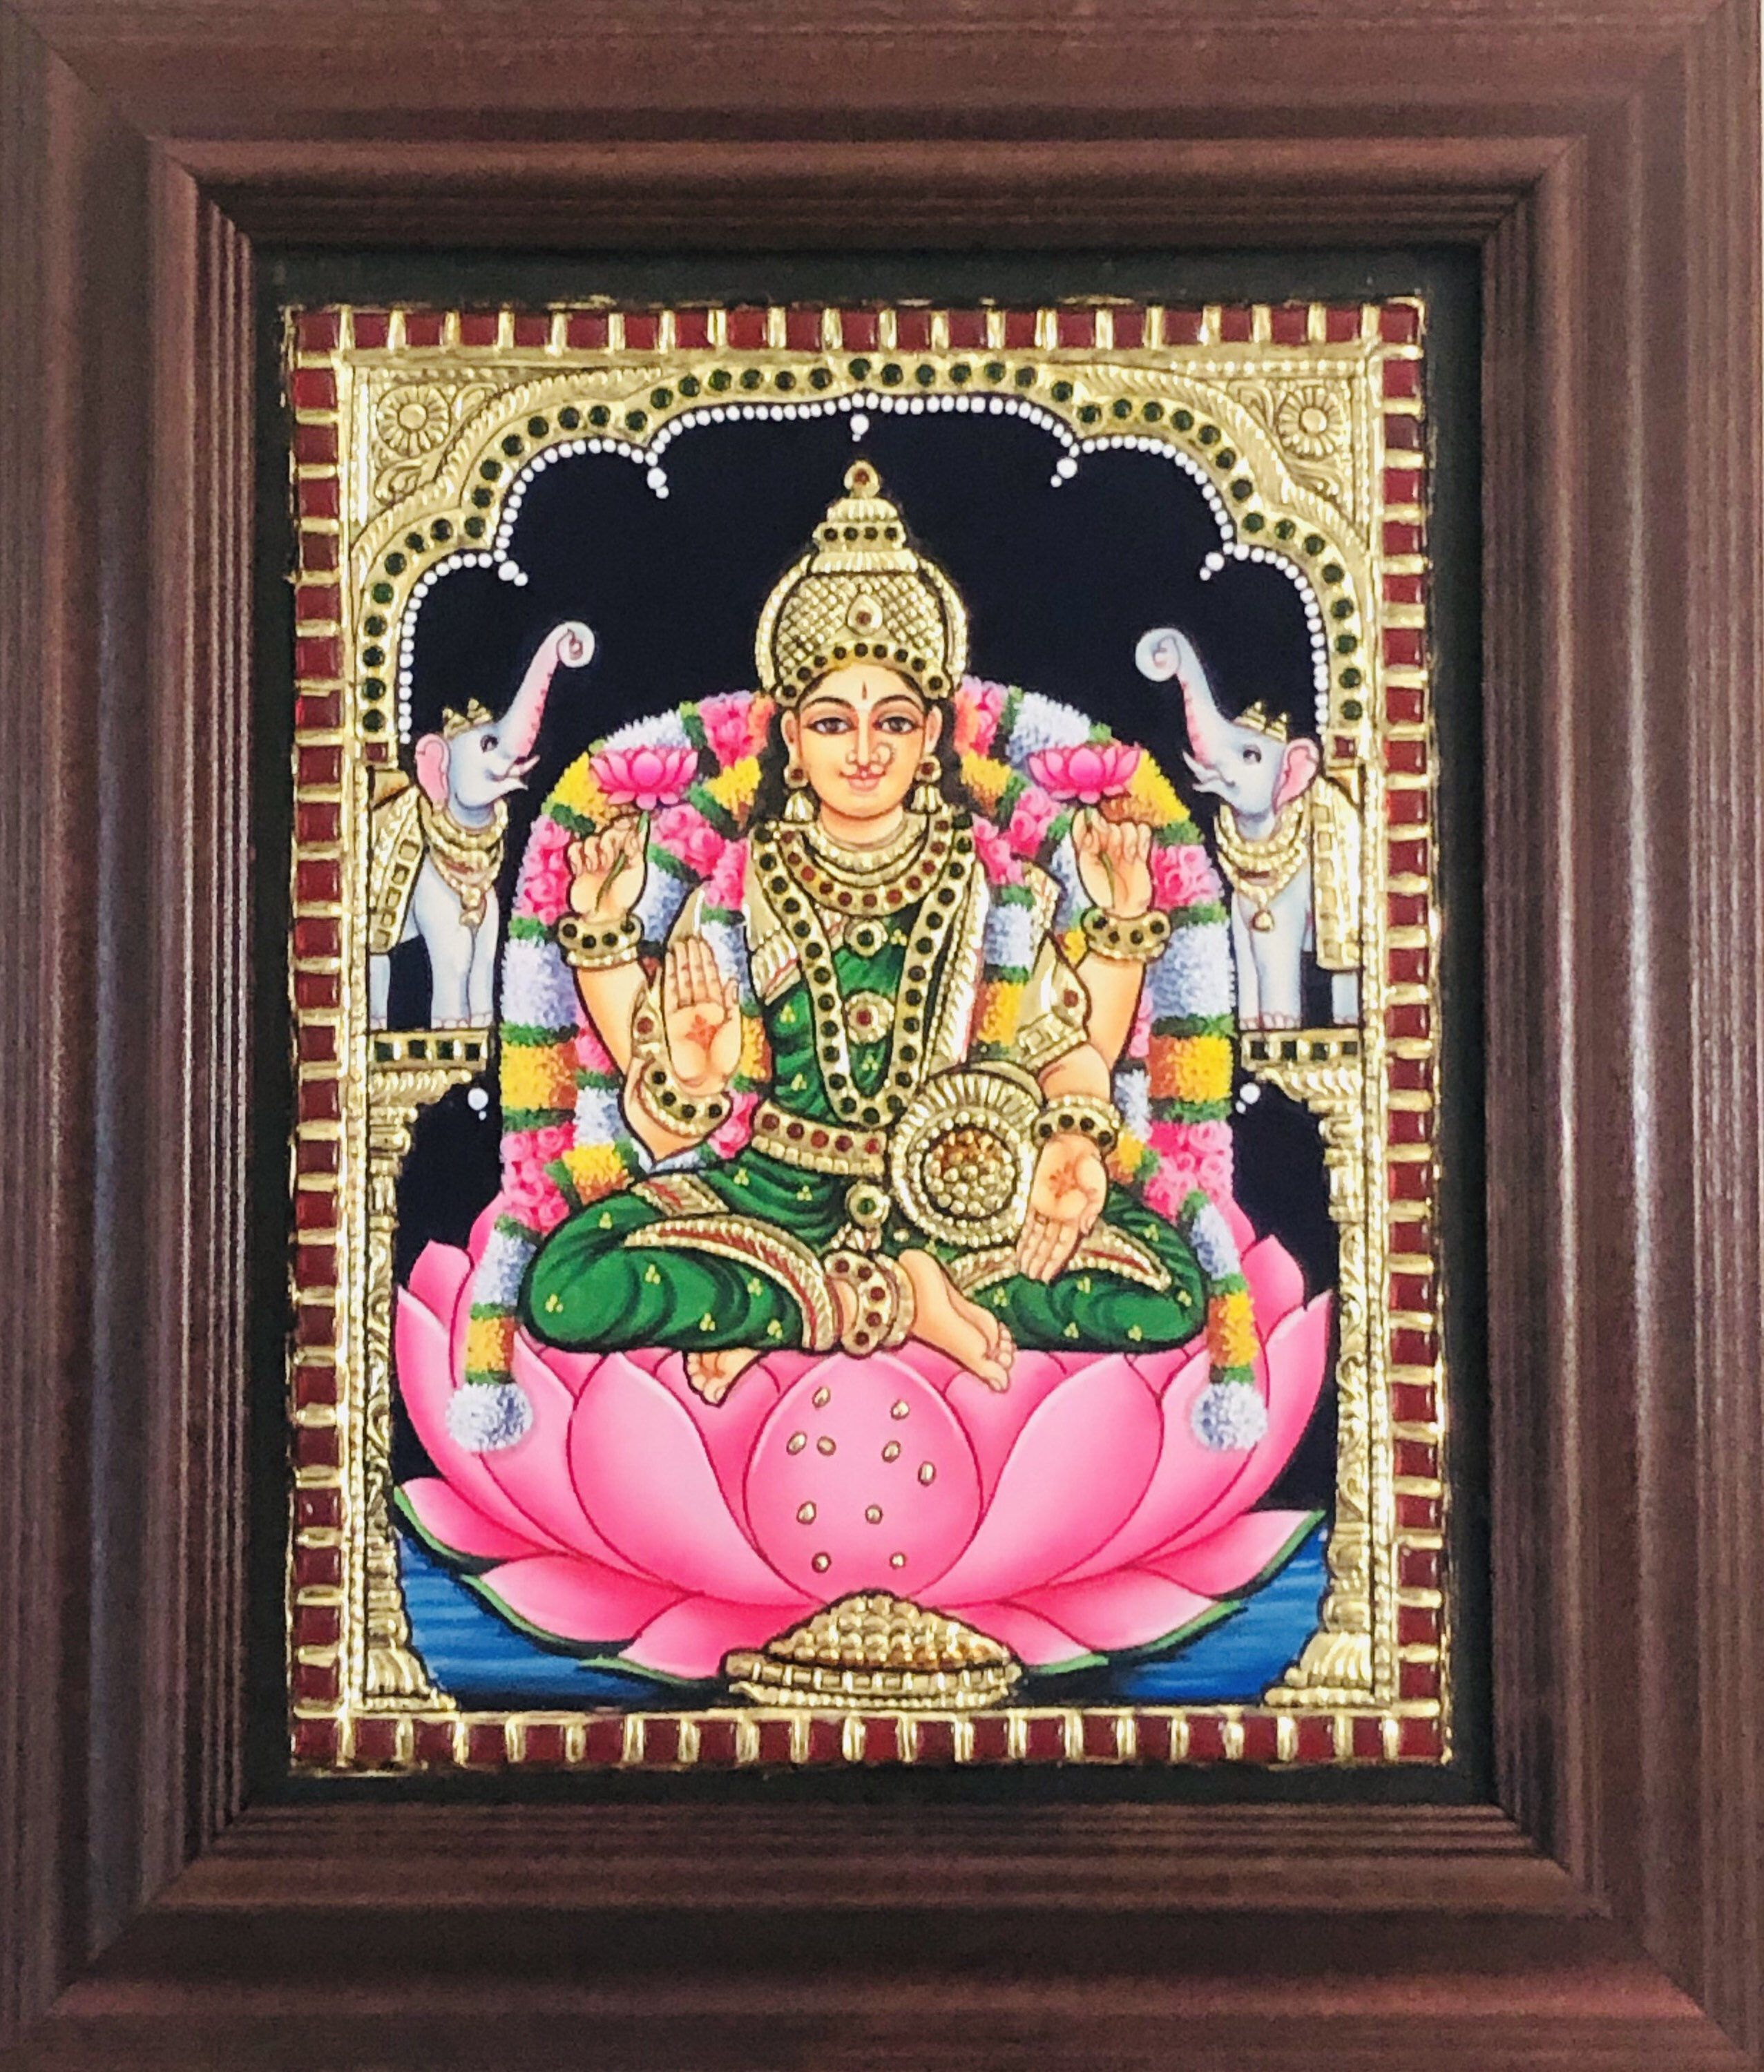 """Excited to share this item from my #etsy shop: Beautiful Lotus Lakshmi Devi gift Tanjore painting 11x13"""" with hardwood frame FREE Shipping from USA #anniversary #tanjoregift #homedecorpainting #divineindianart #housewarmingreturn #indiangift"""